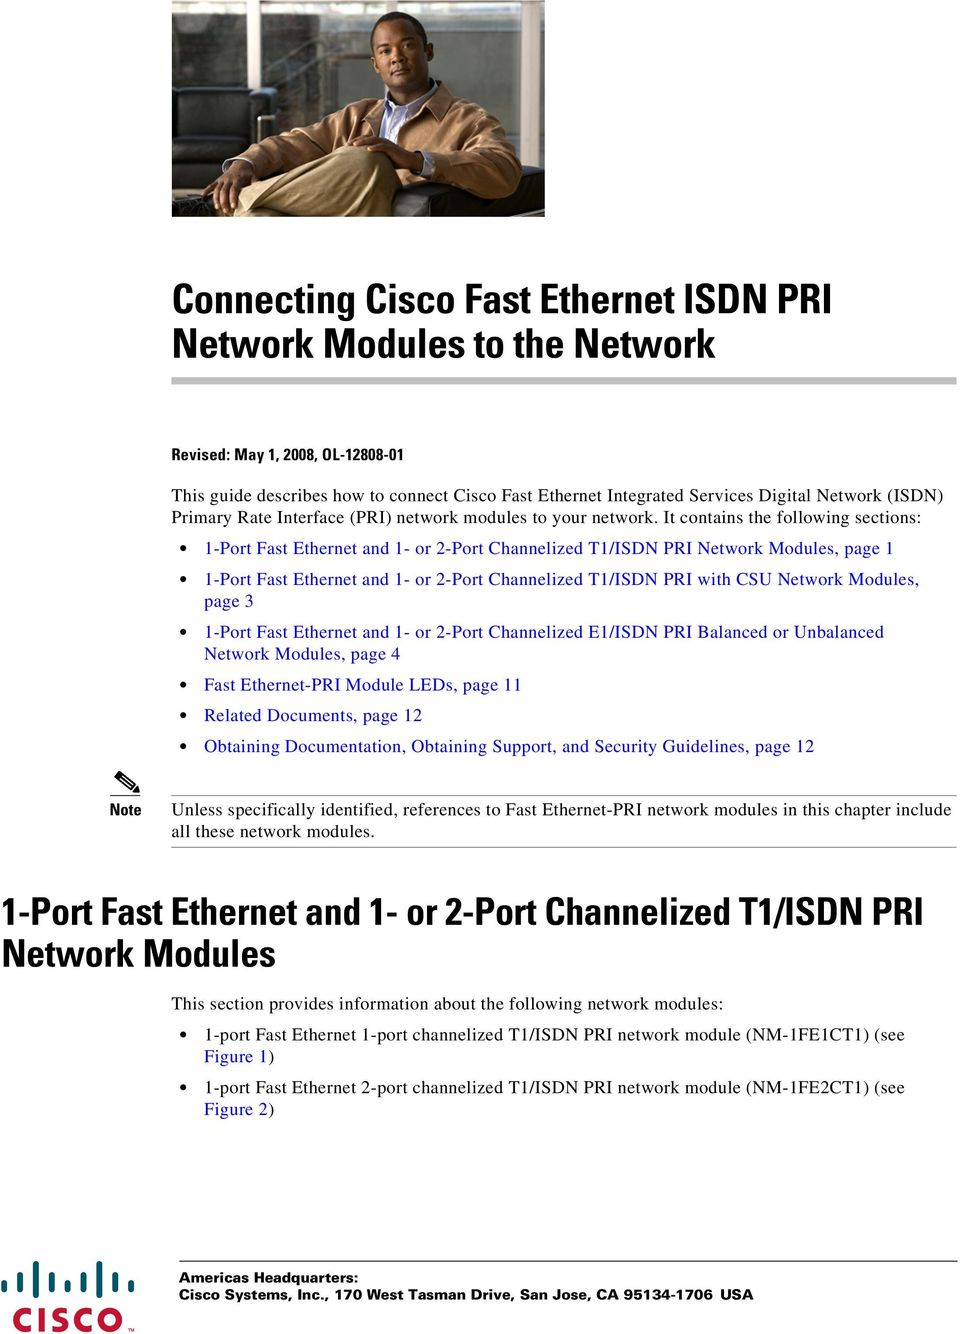 It contains the following sections: 1-Port Fast Ethernet and 1- or 2-Port Channelized T1/ISDN PRI Network Modules, page 1 1-Port Fast Ethernet and 1- or 2-Port Channelized T1/ISDN PRI with CSU